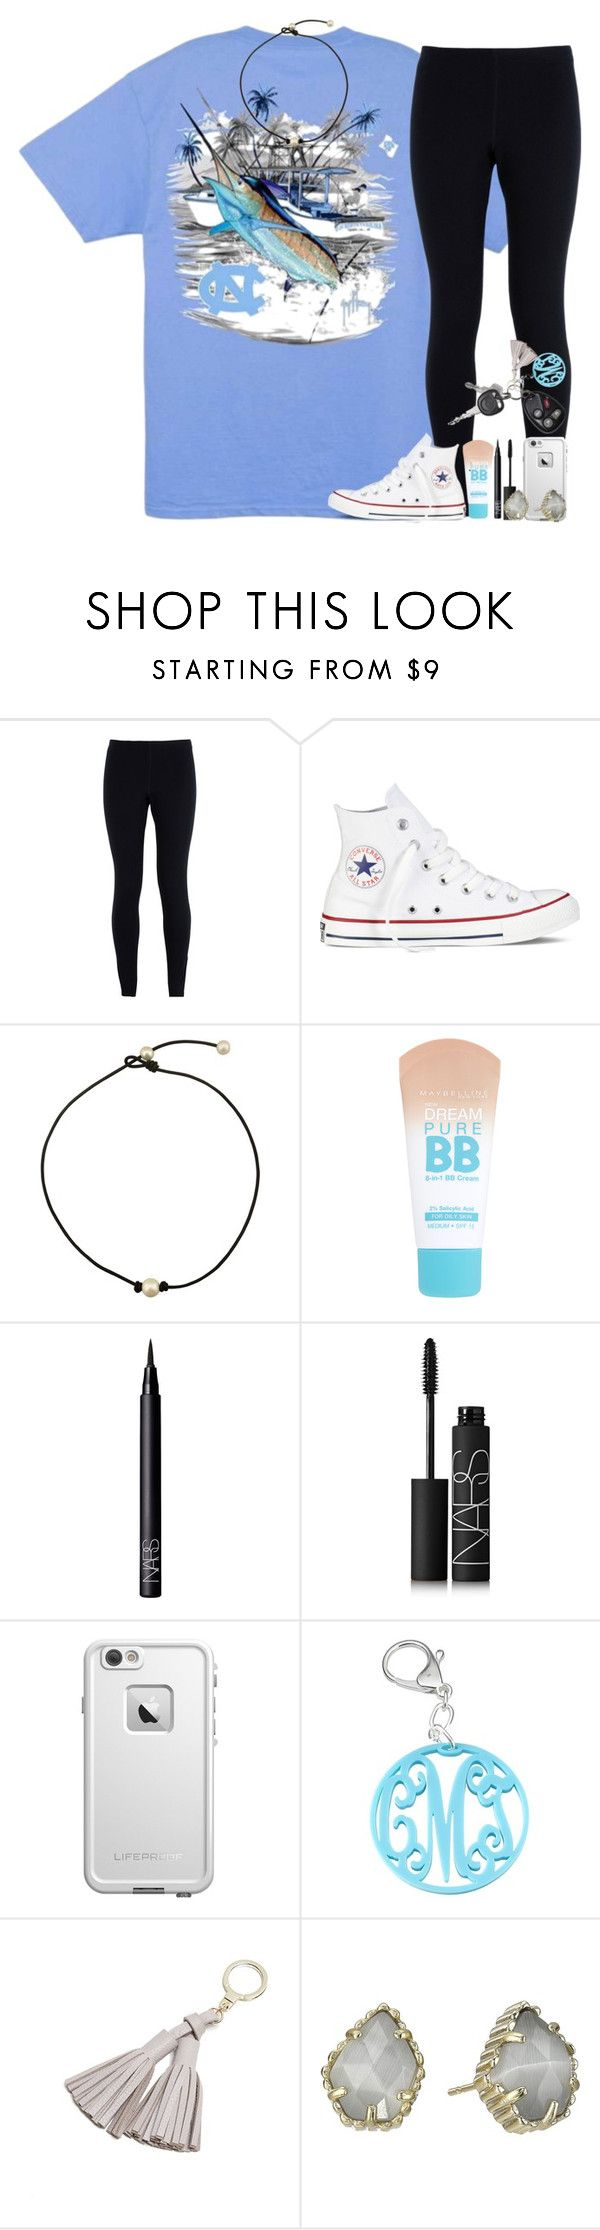 """day 7; carolina football game"" by abbypj ❤ liked on Polyvore featuring NIKE, Converse, Maybelline, NARS Cosmetics, LifeProof, Kate Spade, Kendra Scott and madimadsfall2k16"